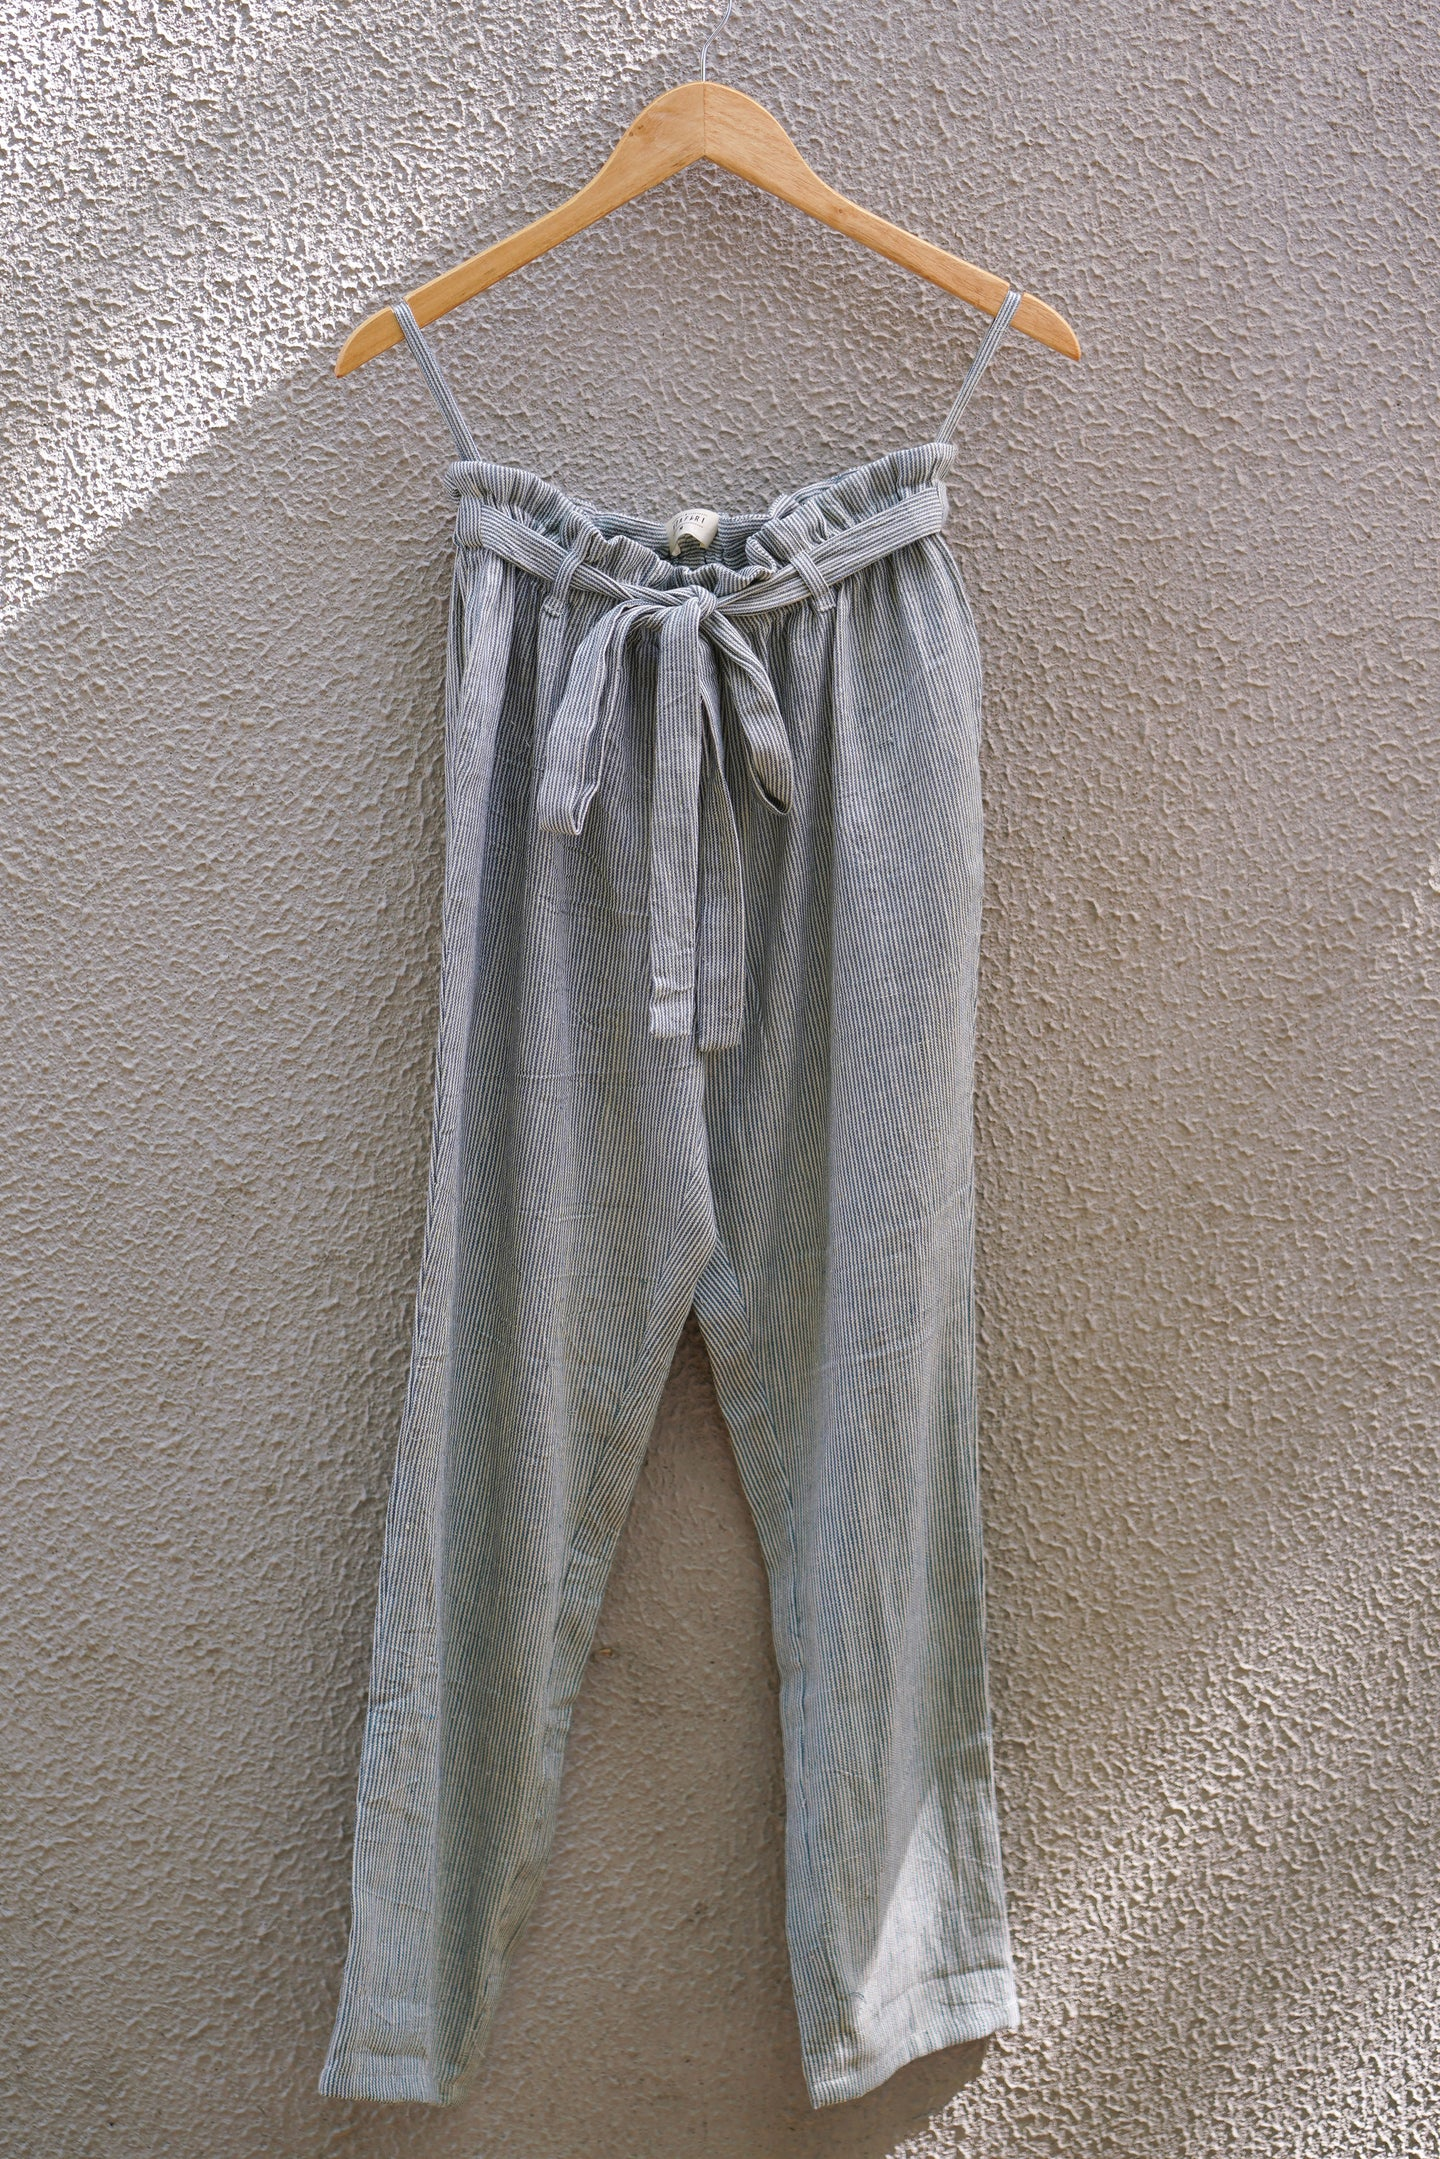 Sea green striped pants